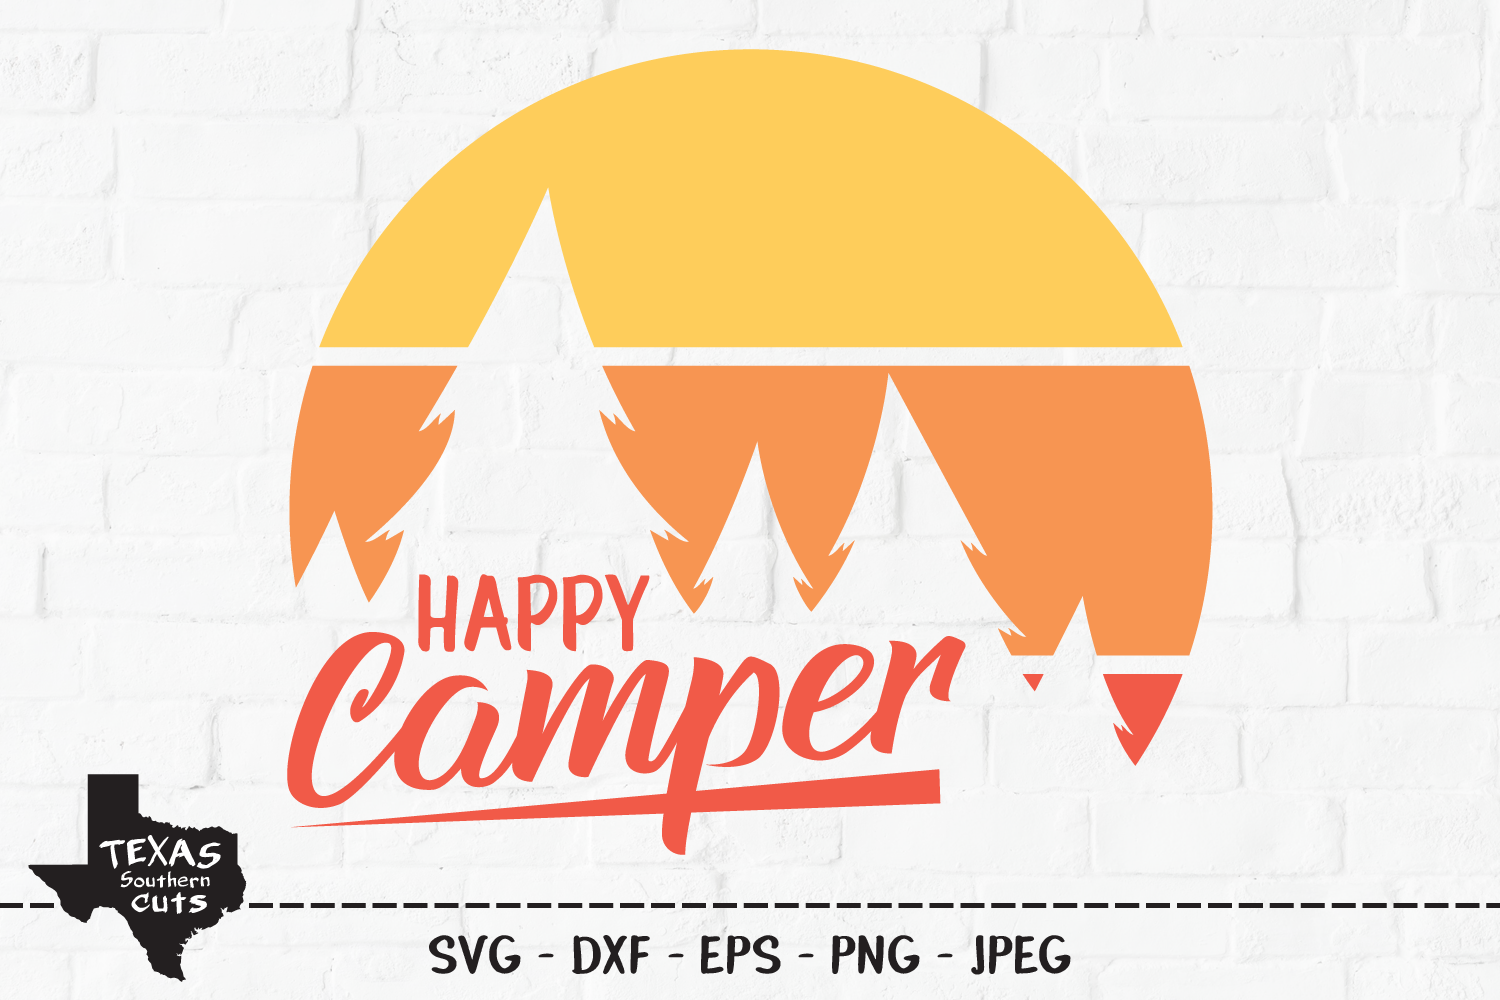 Download Free Happy Camper Camping Shirt Design Graphic By Texassoutherncuts for Cricut Explore, Silhouette and other cutting machines.